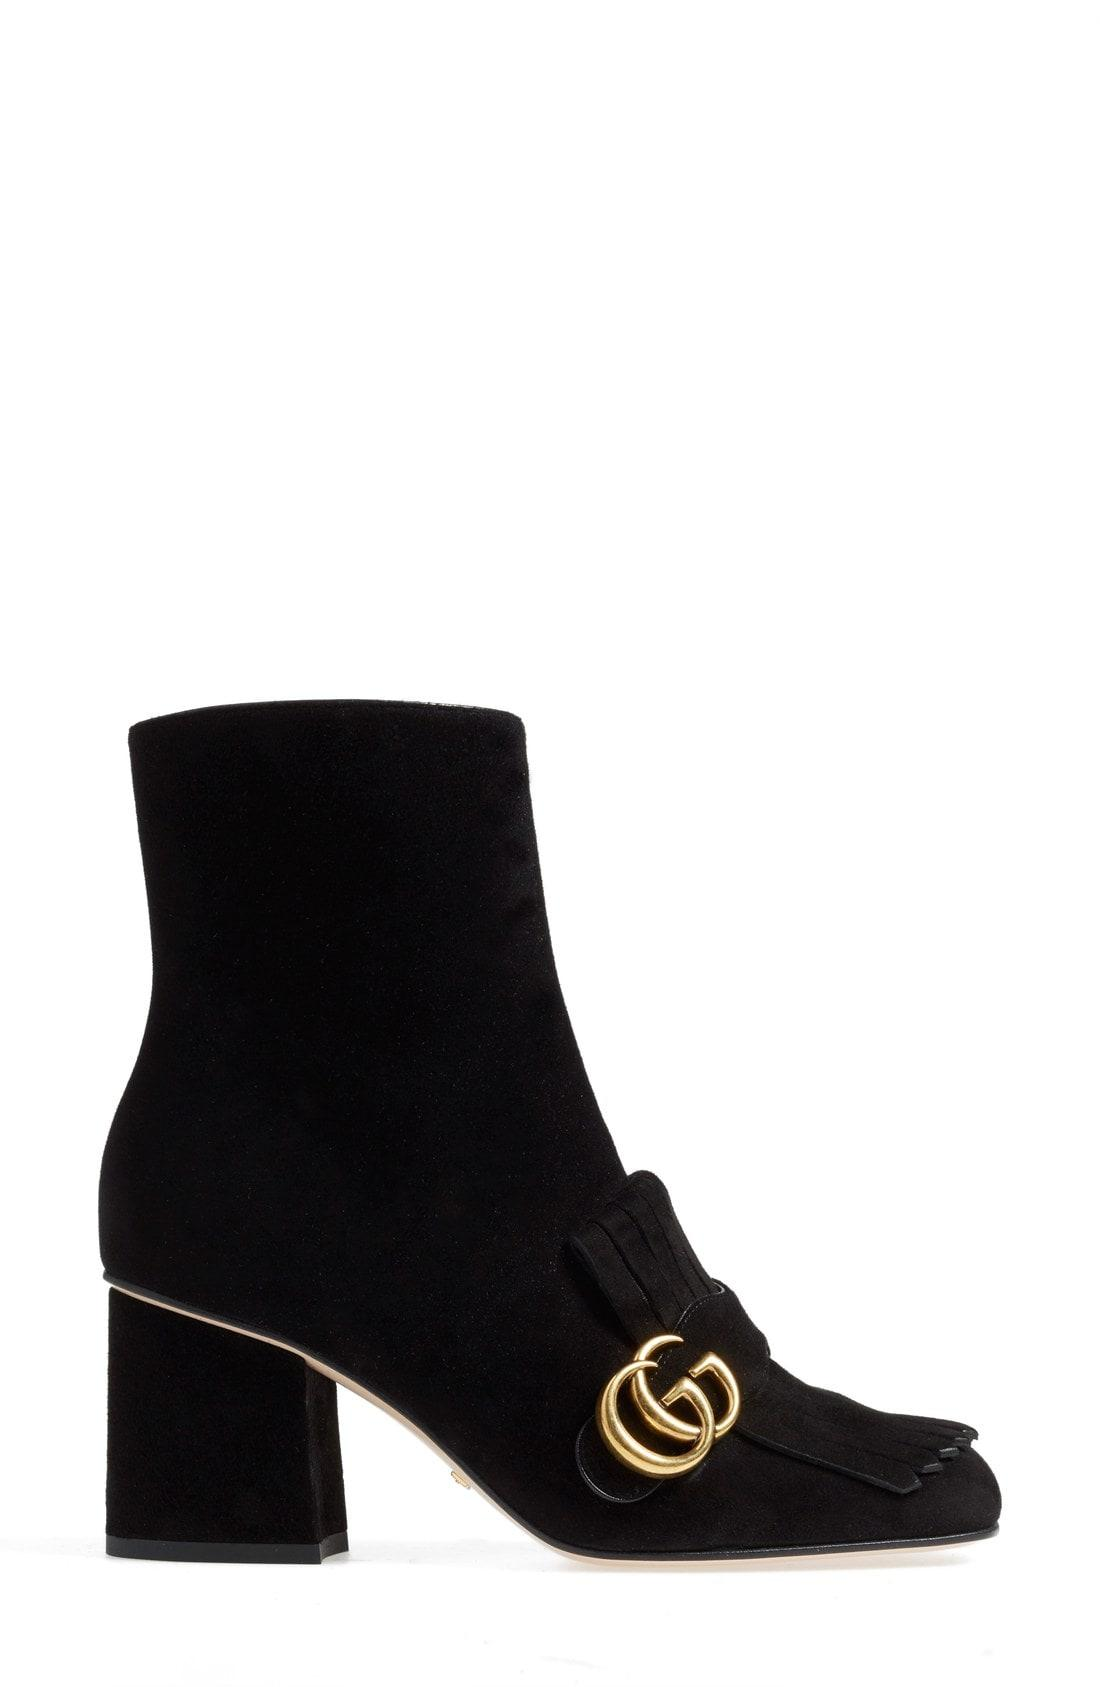 a6fae4a7620 Gucci Marmont Fringed Logo-Embellished Suede Ankle Boots In Black ...